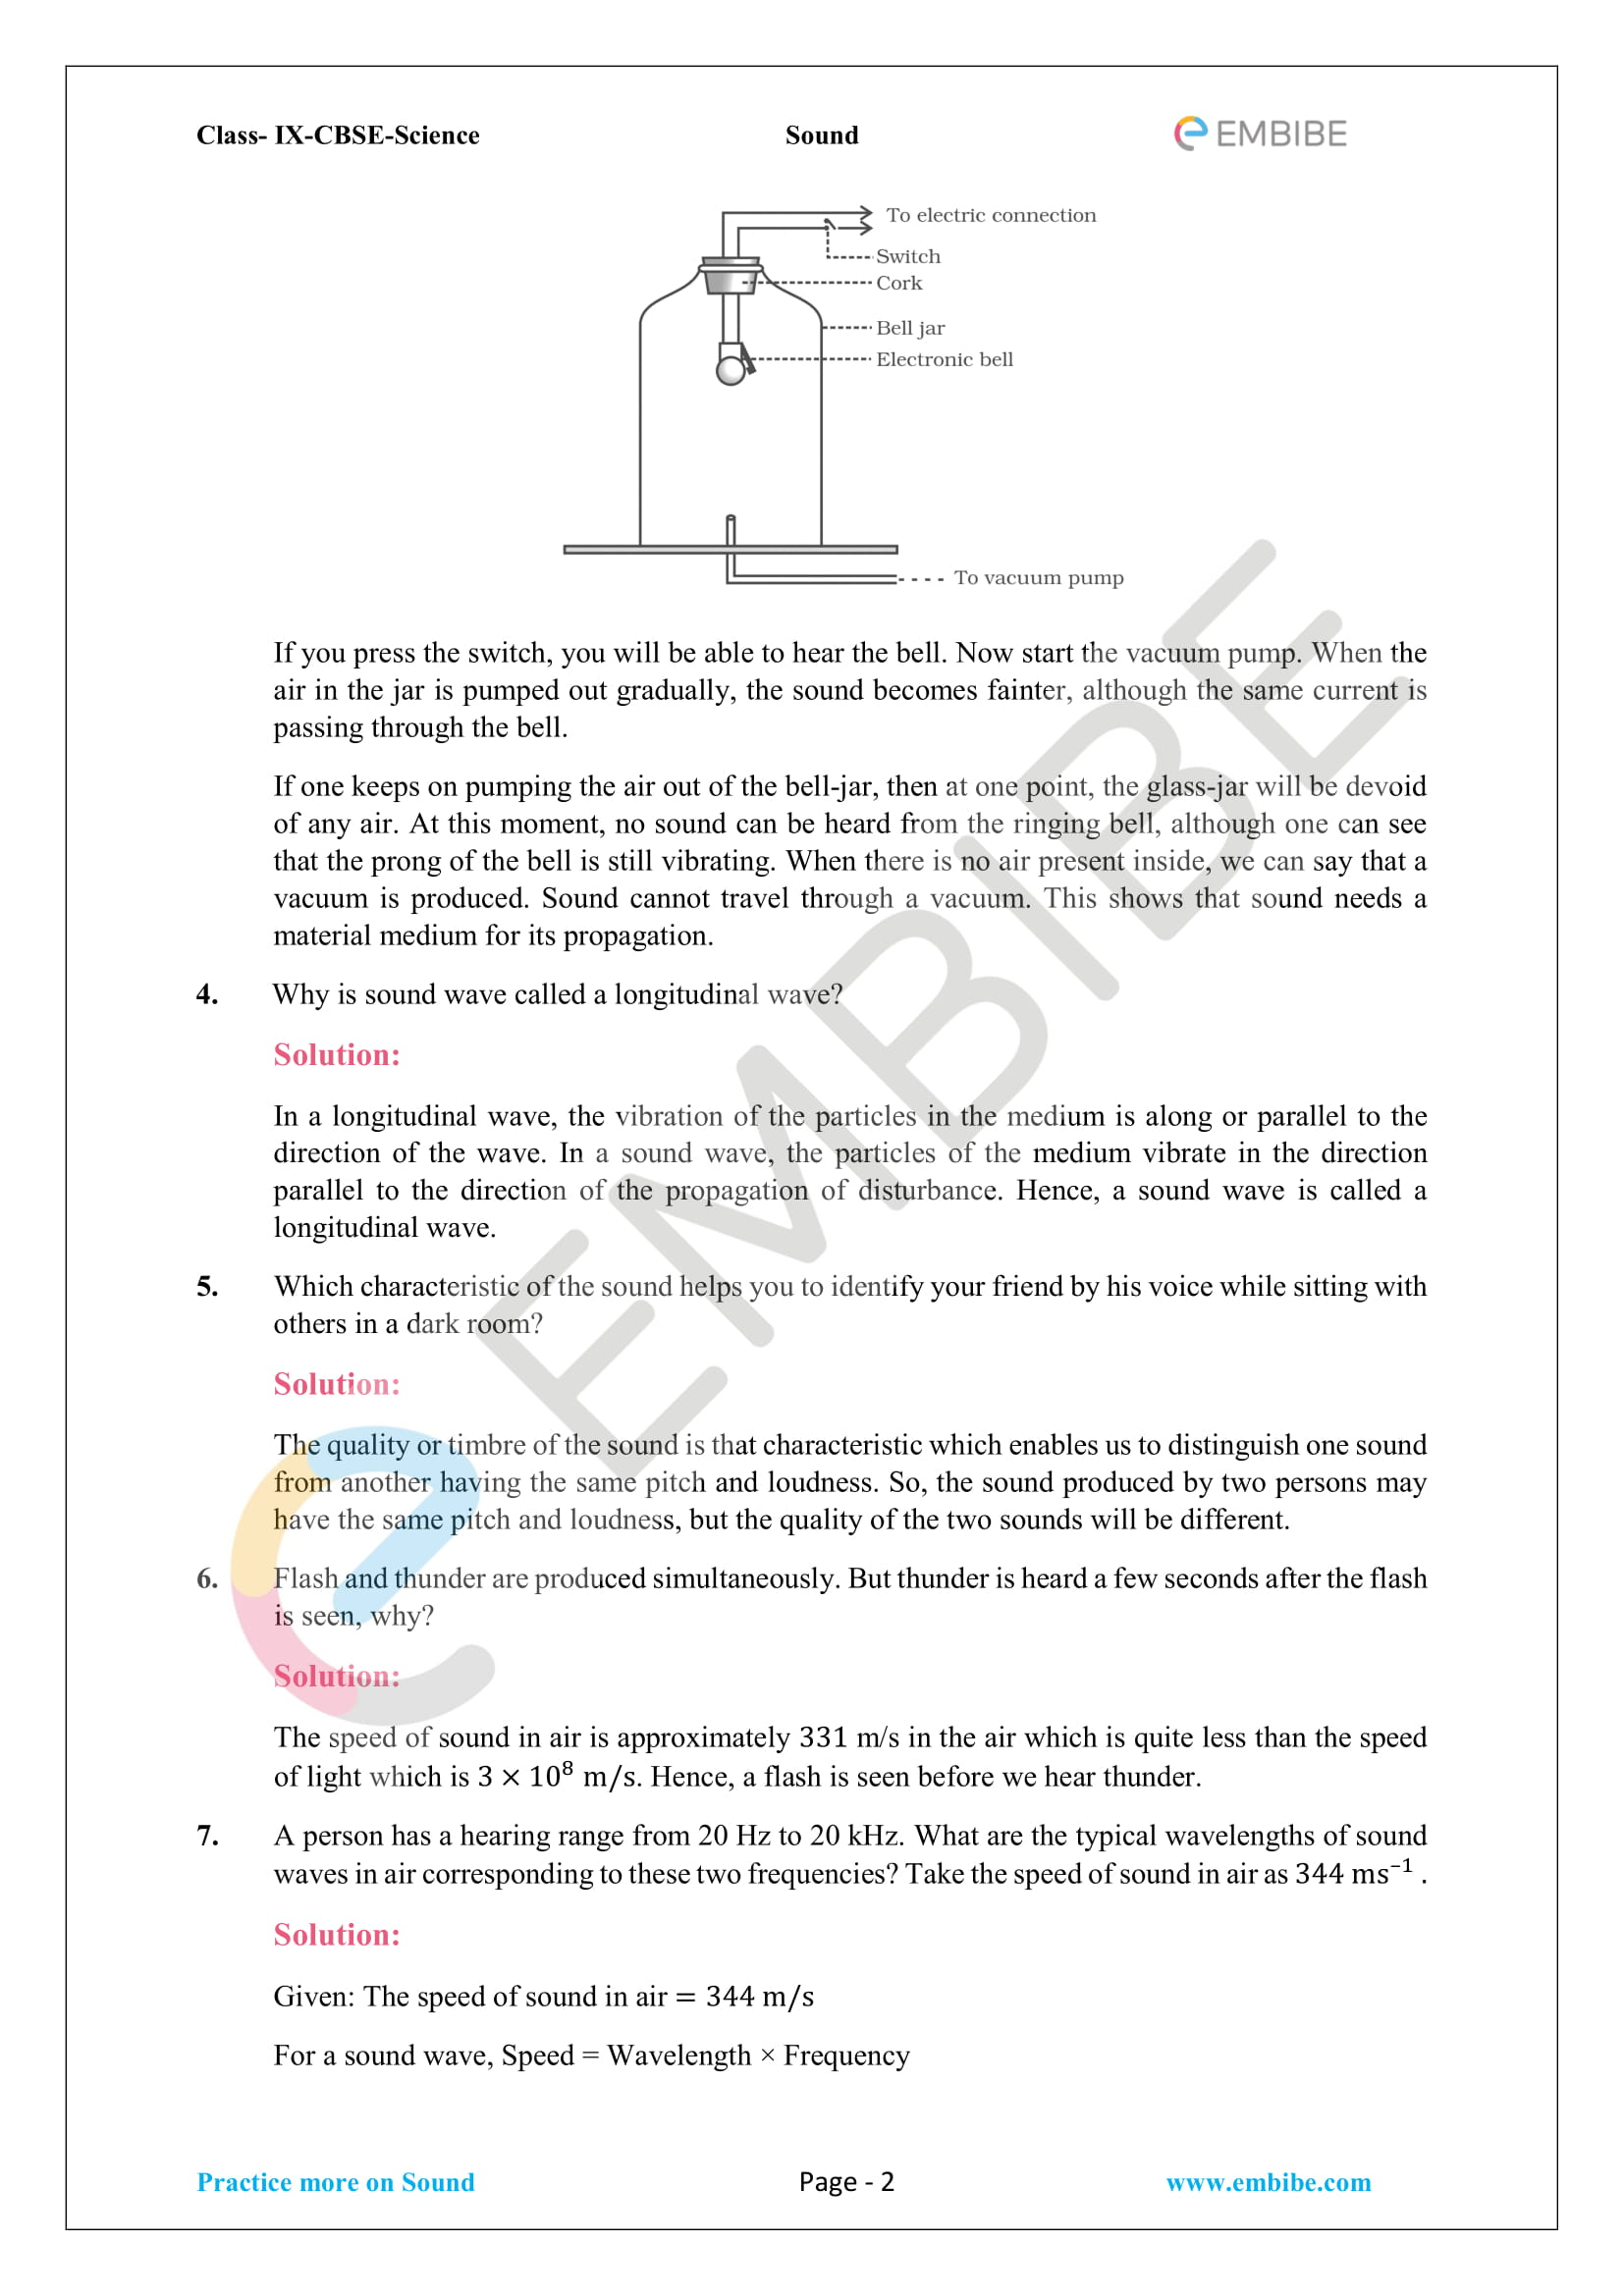 CBSE NCERT Solutions For Class 9 Science Chapter 12 - Sound - 2